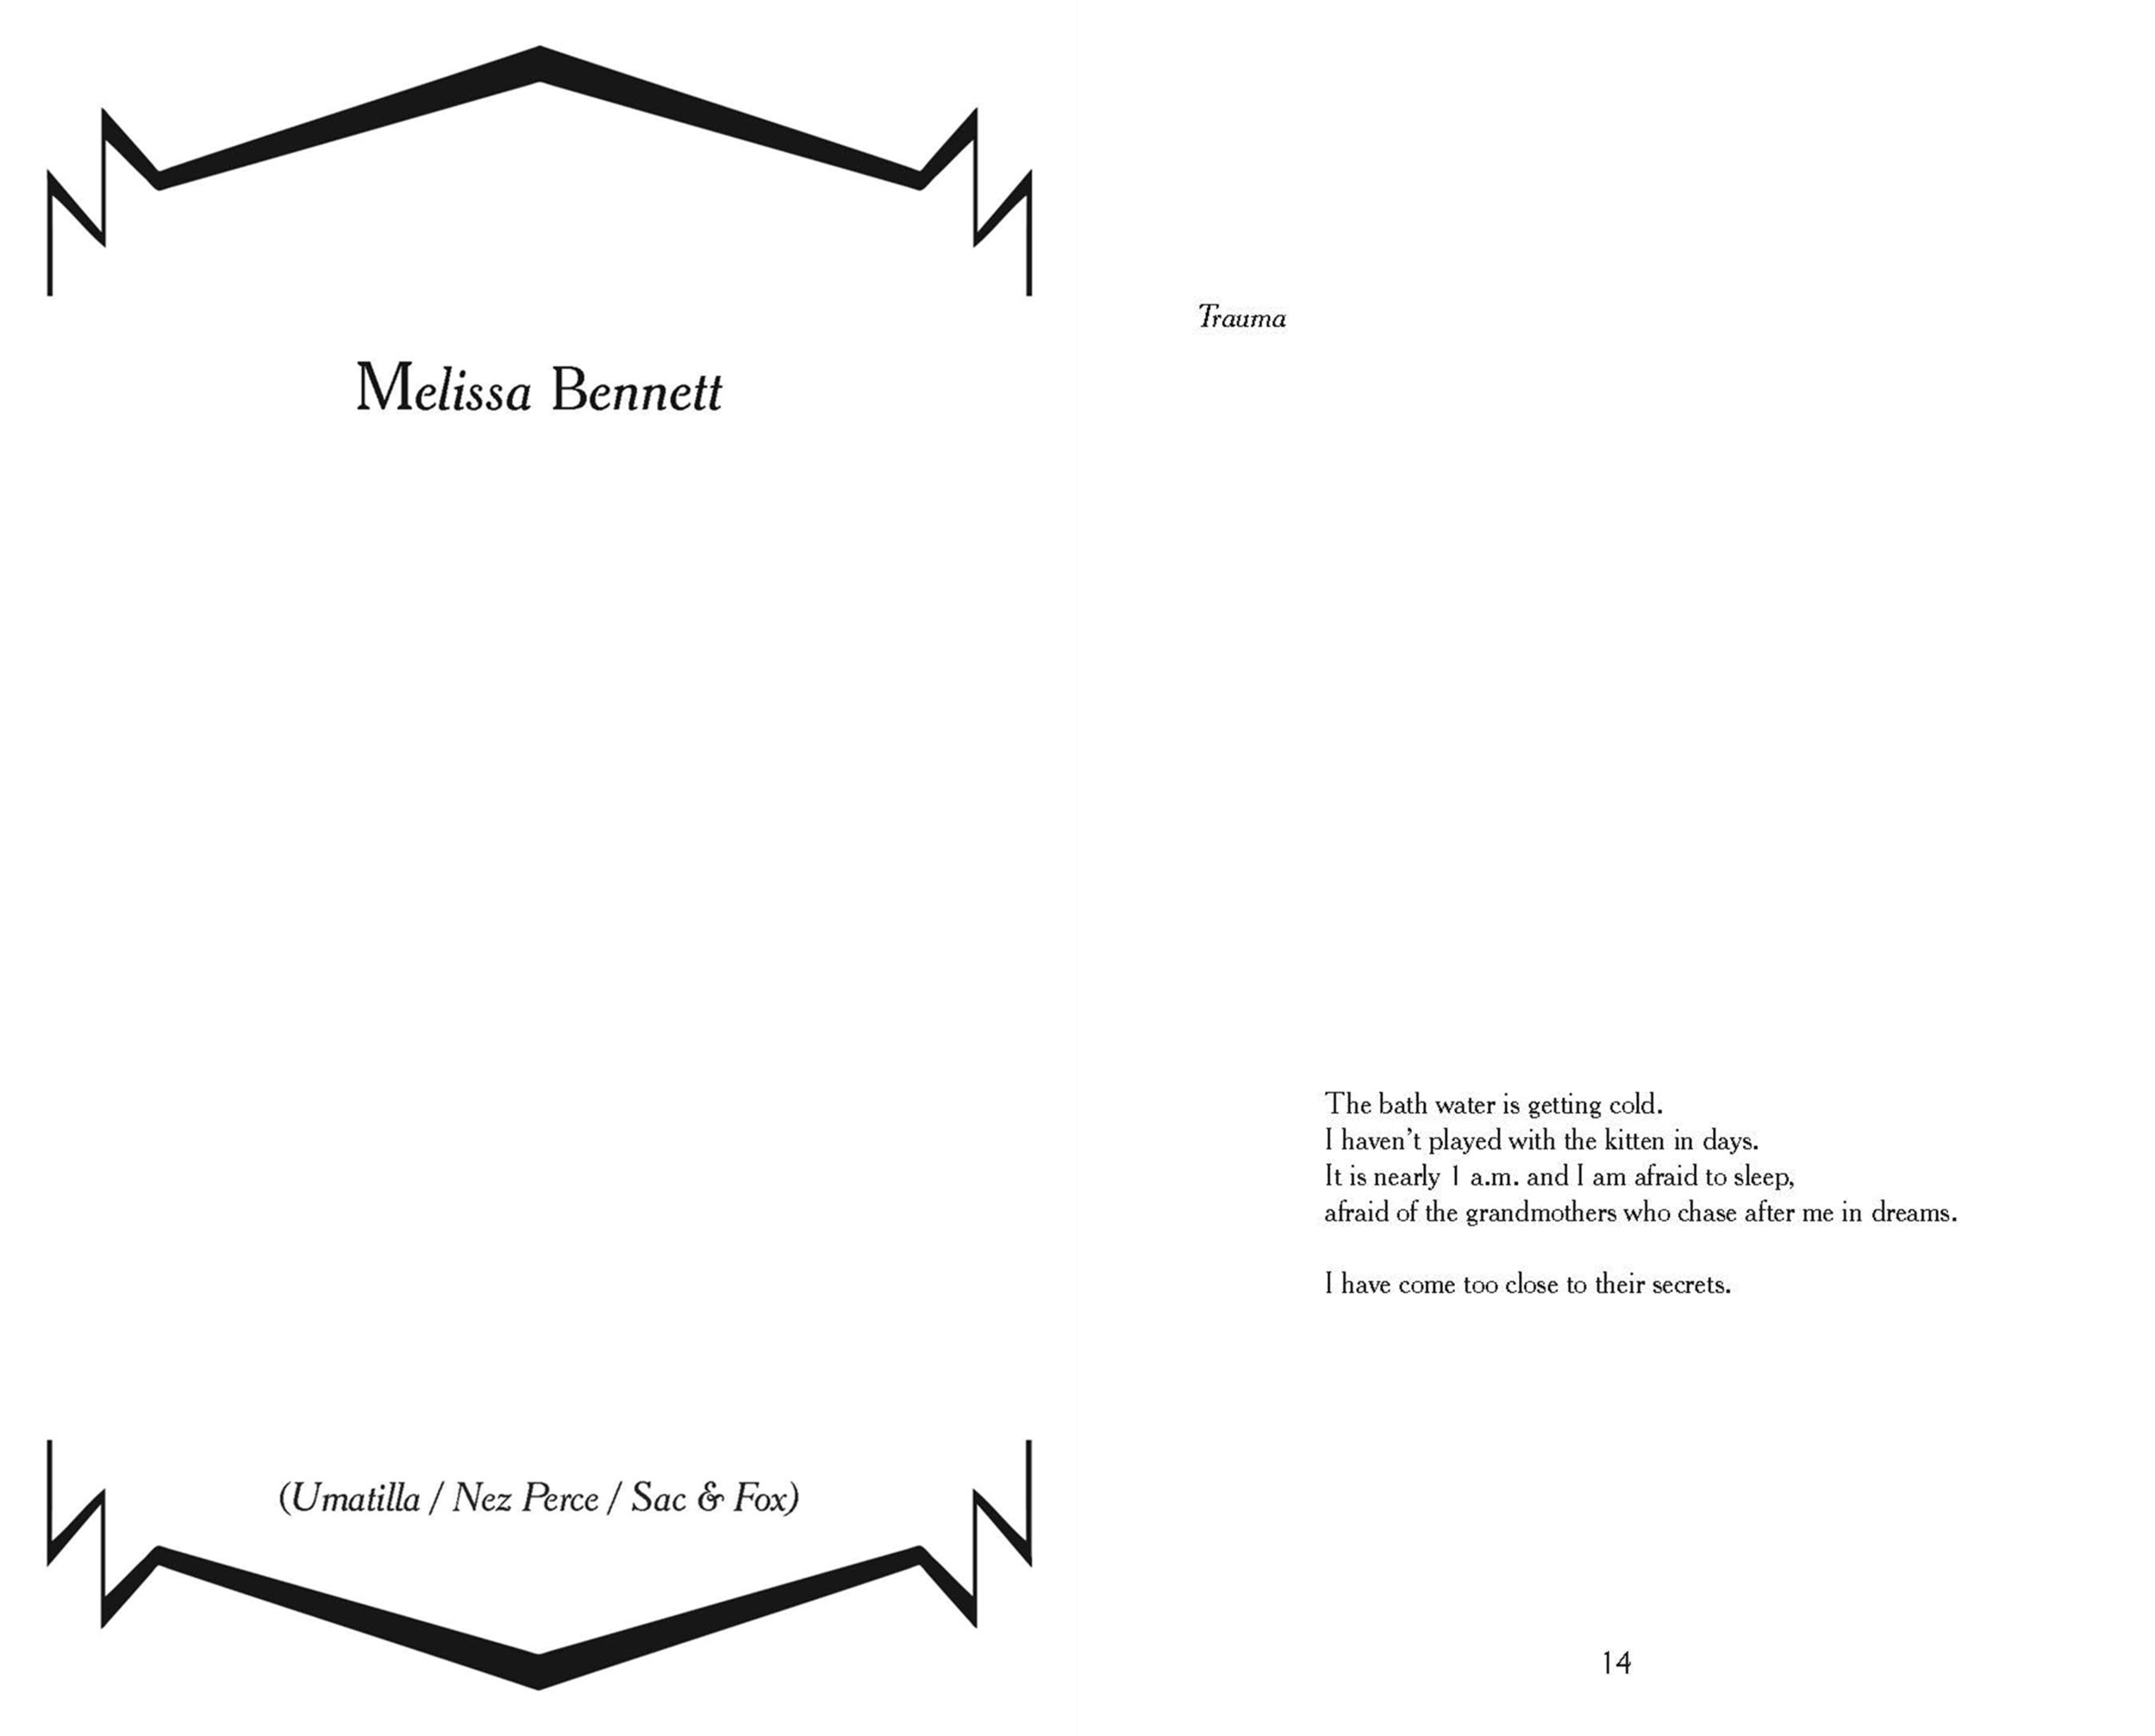 Trauma               By Melissa Bennett             Published with SURVIVANCE: Indigenous Poesis I